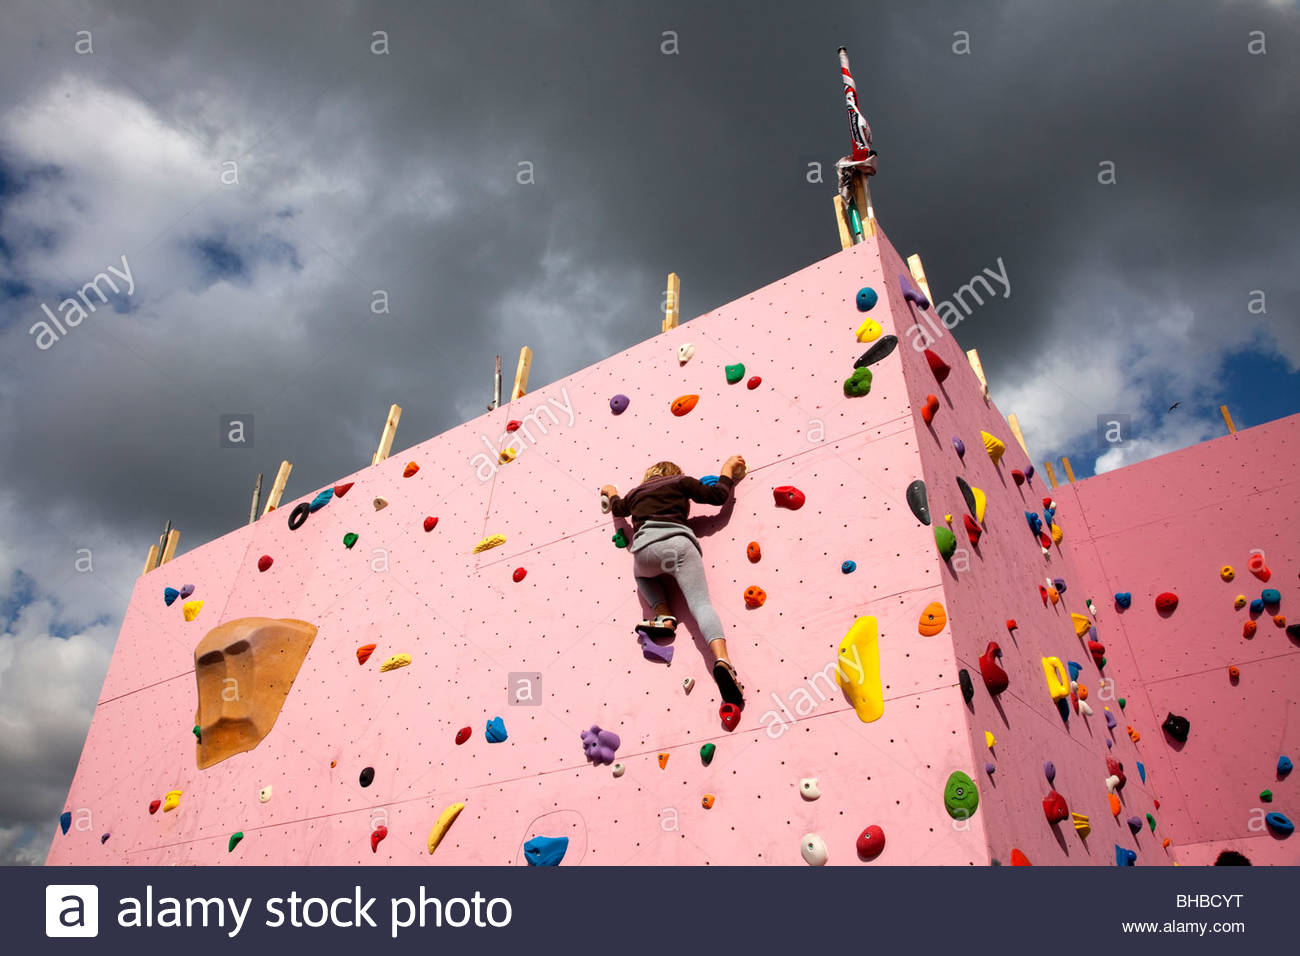 Plage artificielle athletic rock climbing bouldering Benelux Dutch courage l'Europe d'endurance musculaire Photo Stock